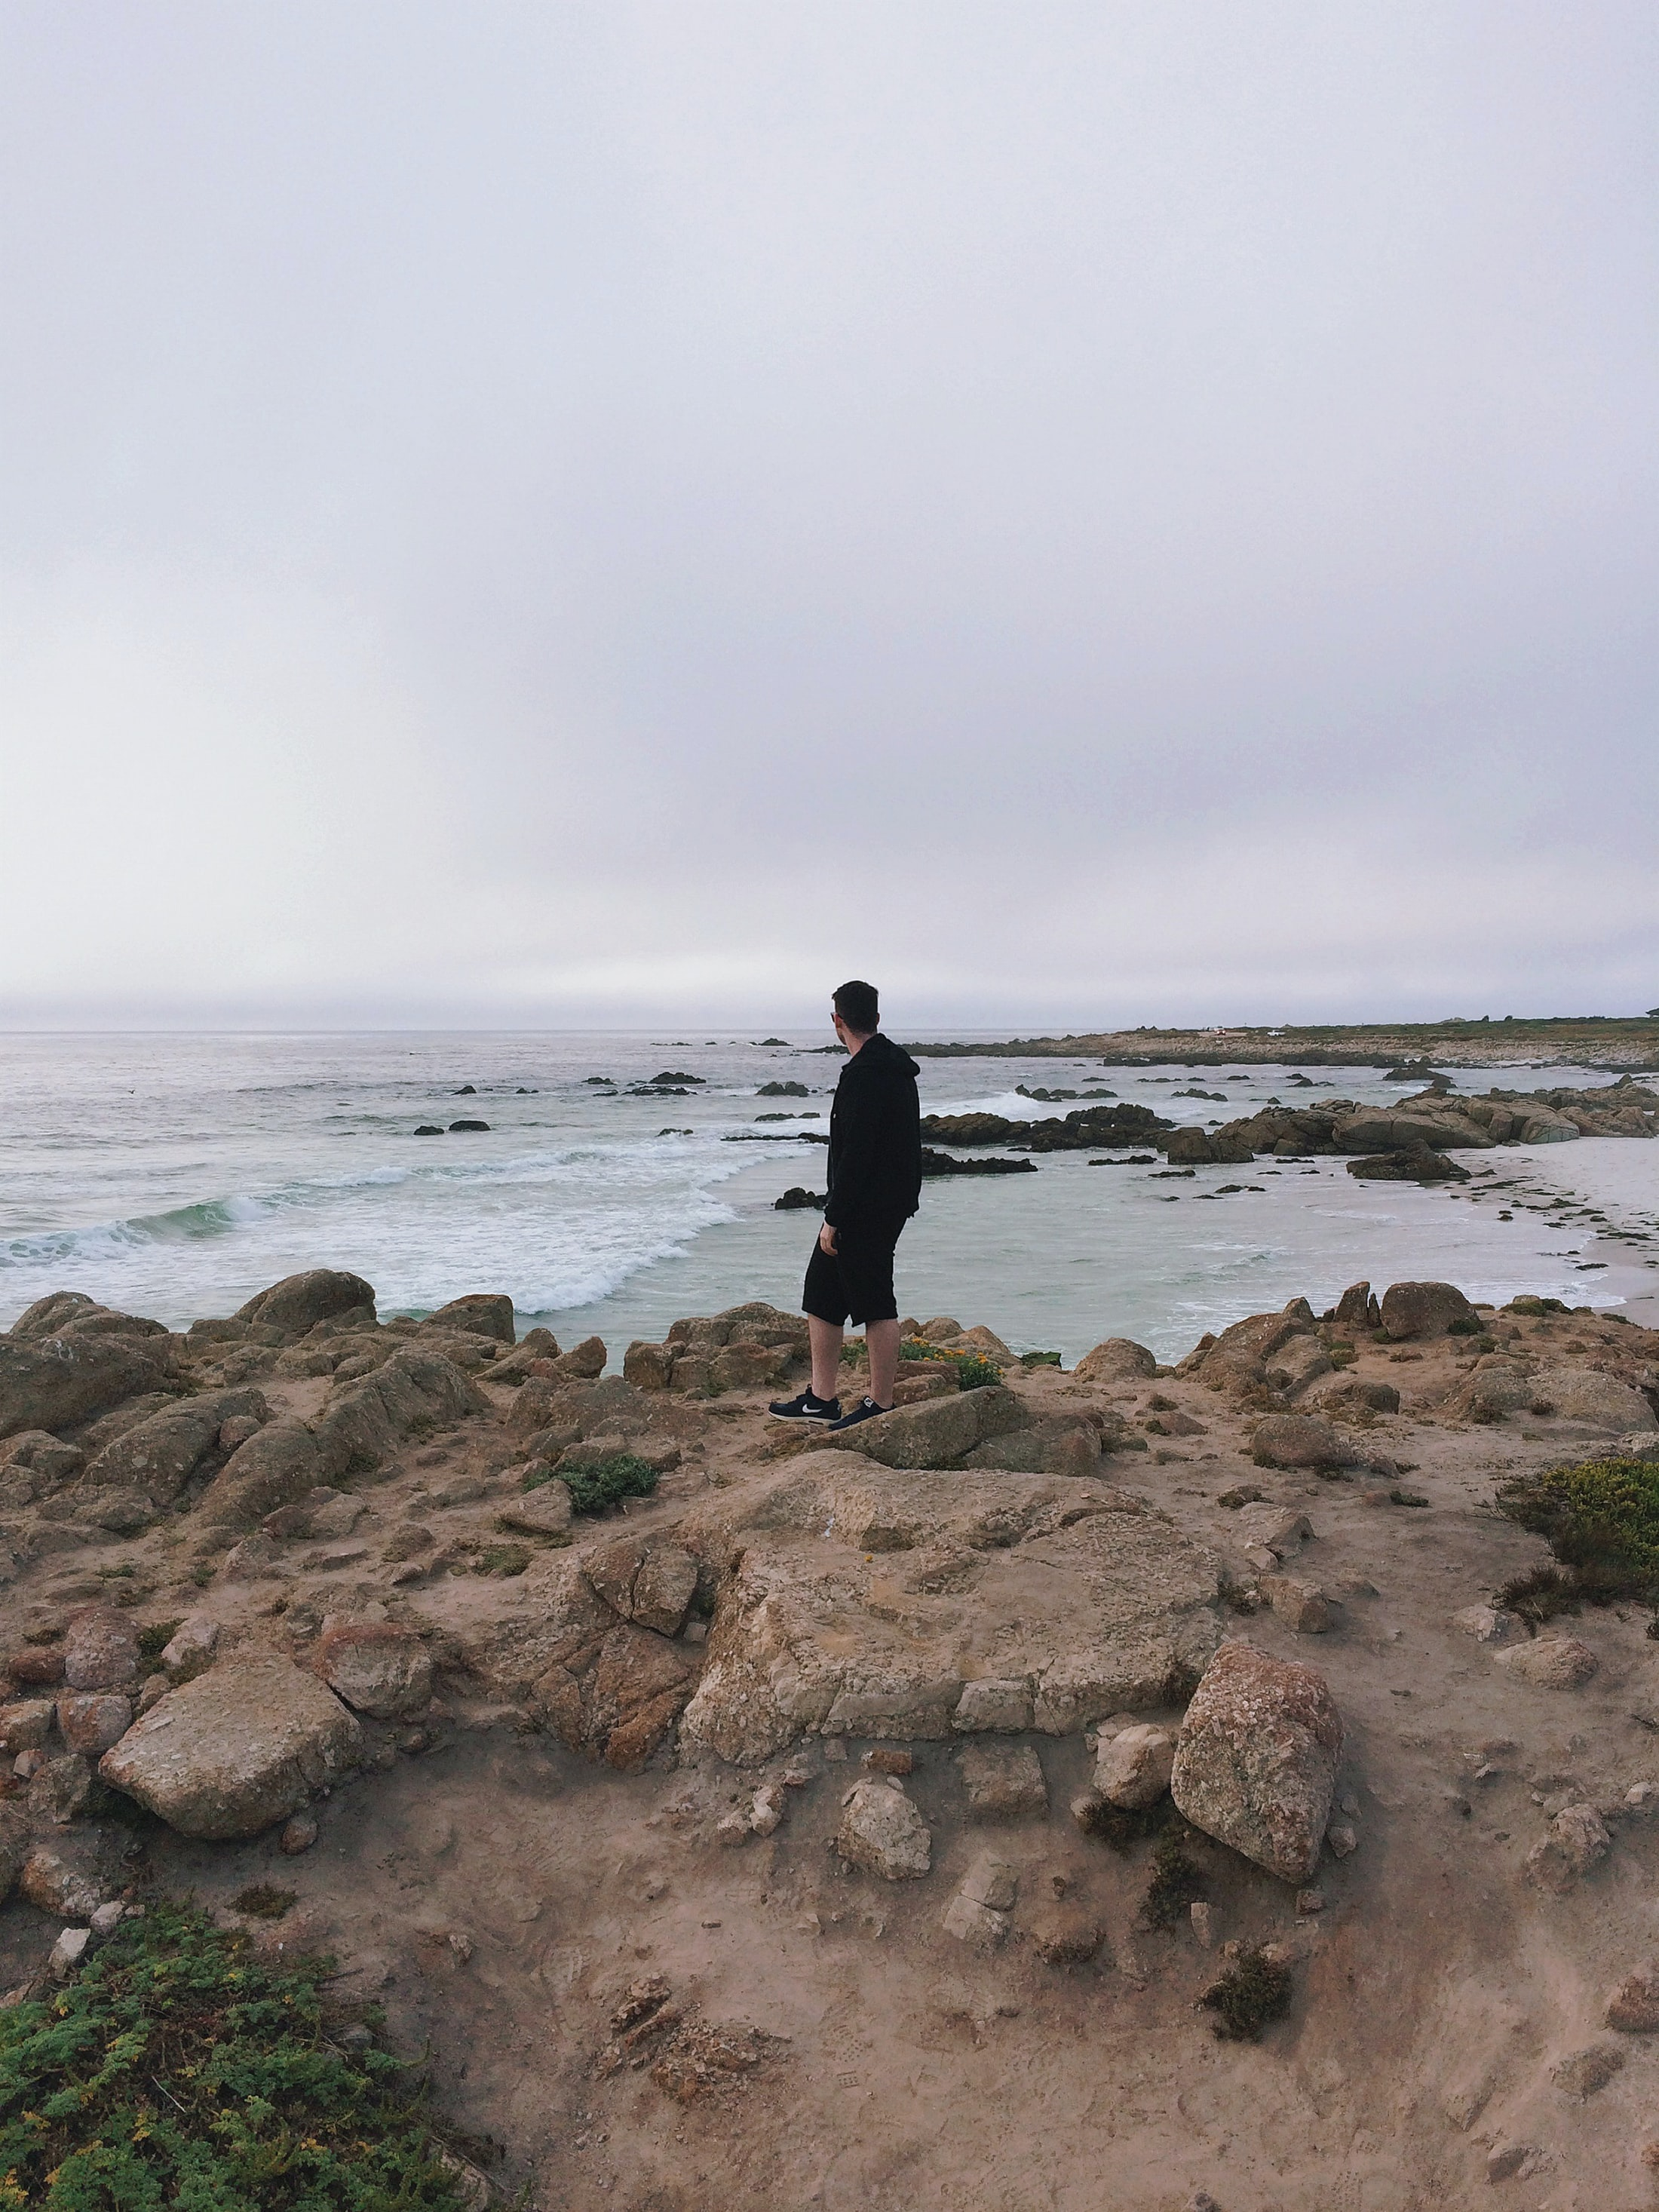 A man standing on a rocky shore on a cloudy day